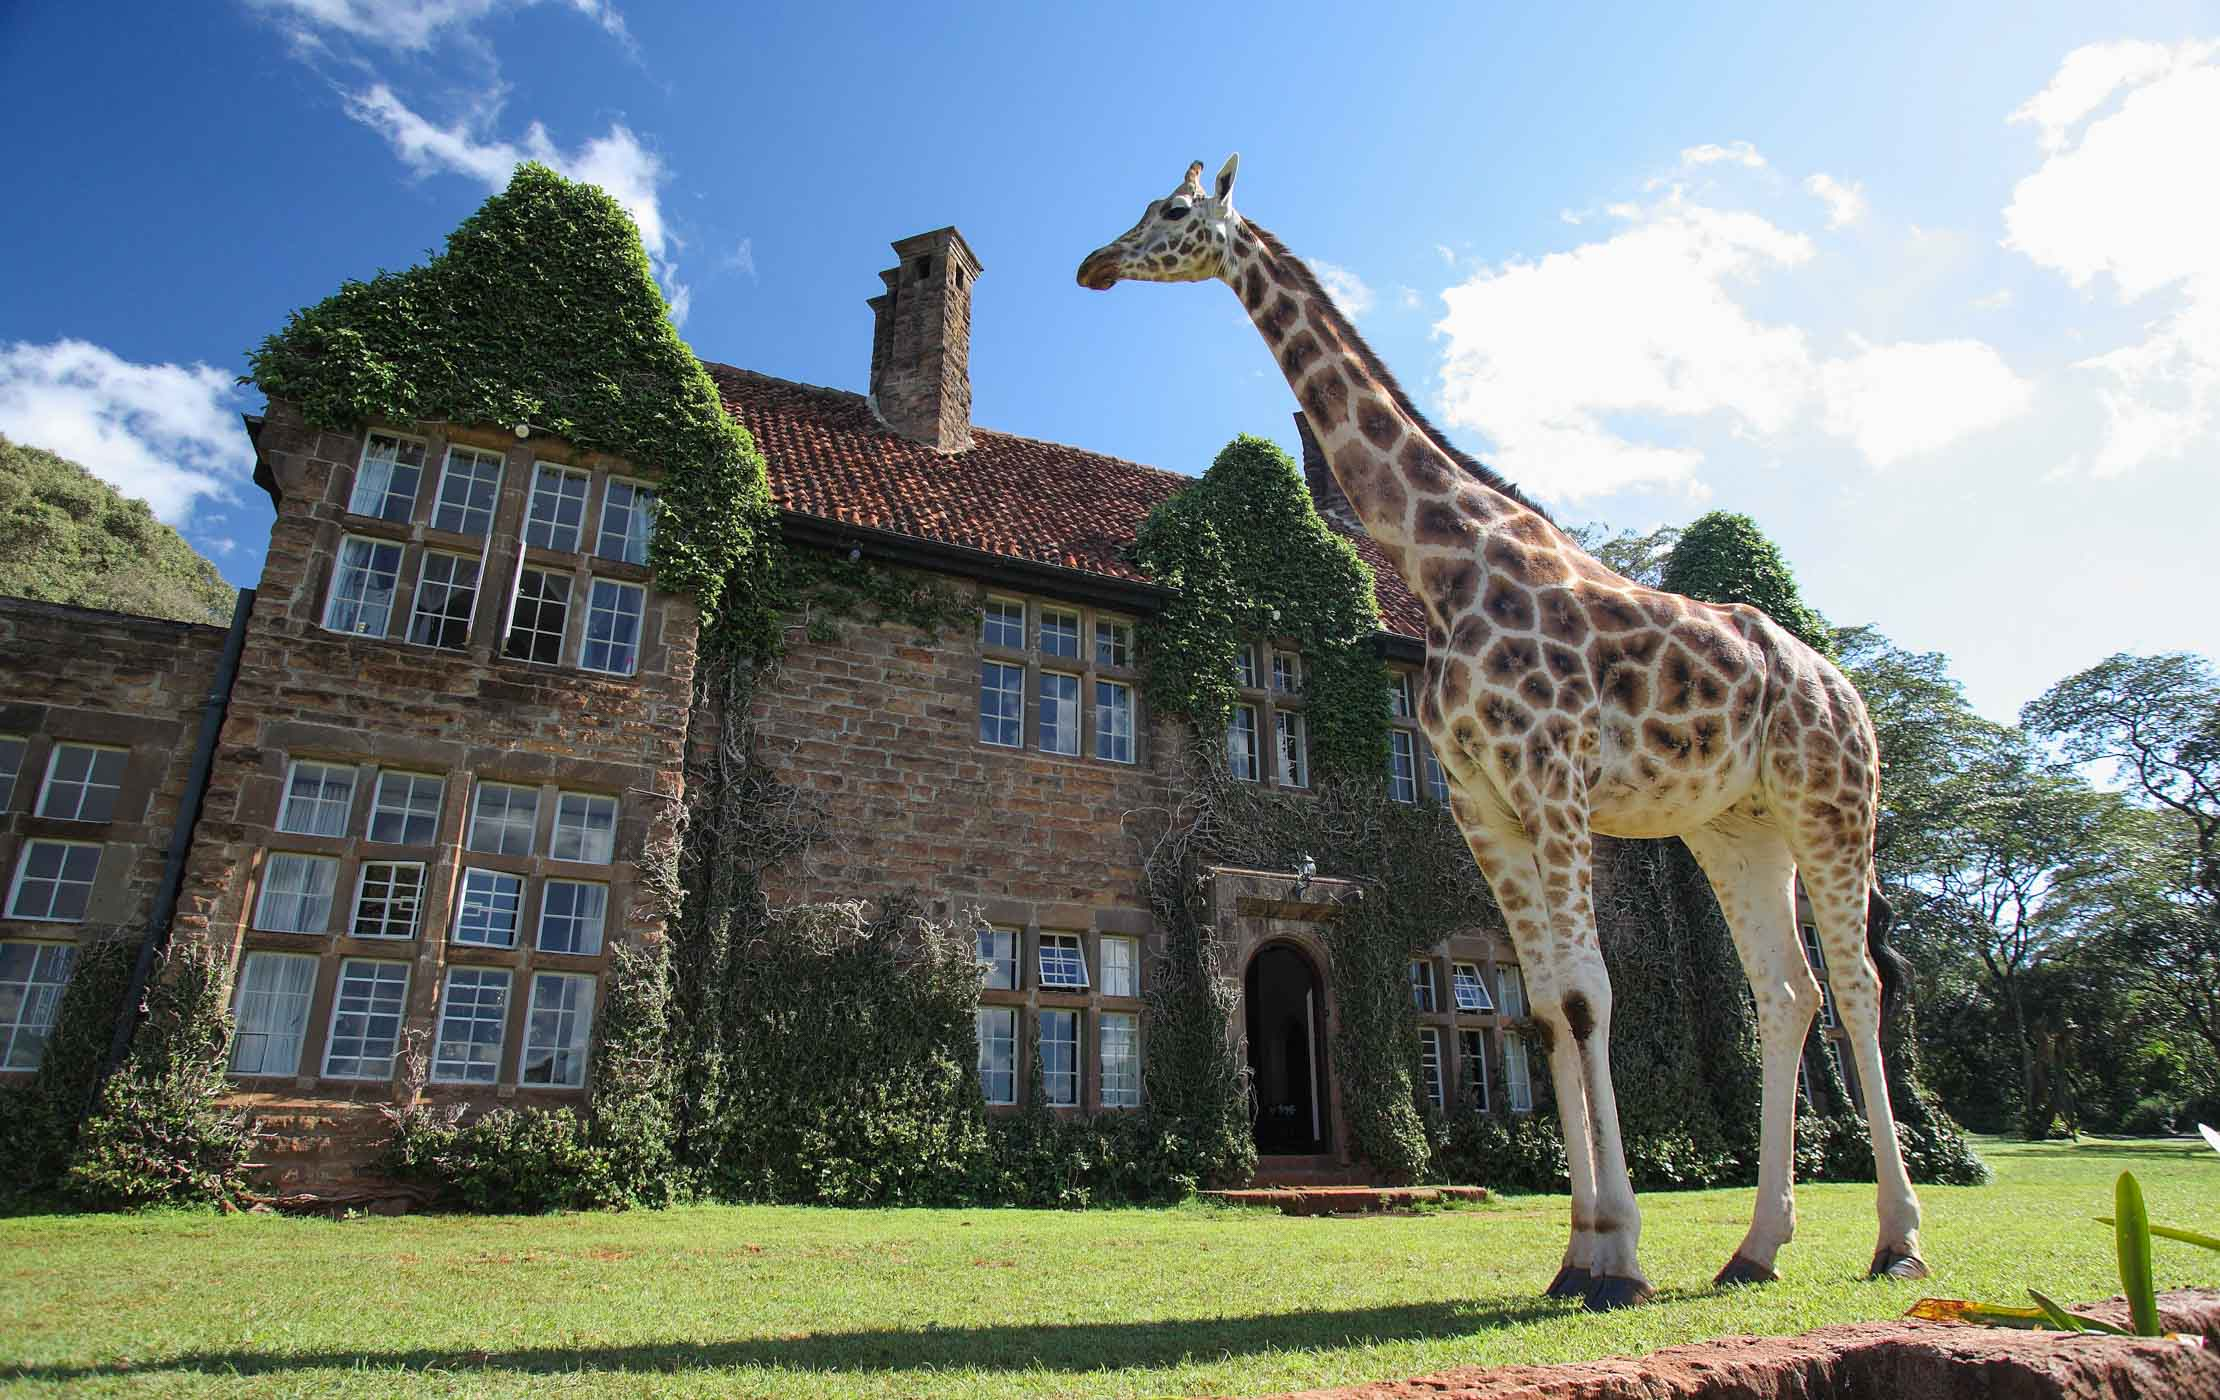 Giraffe sticks his neck out to join family for breakfast at manor house